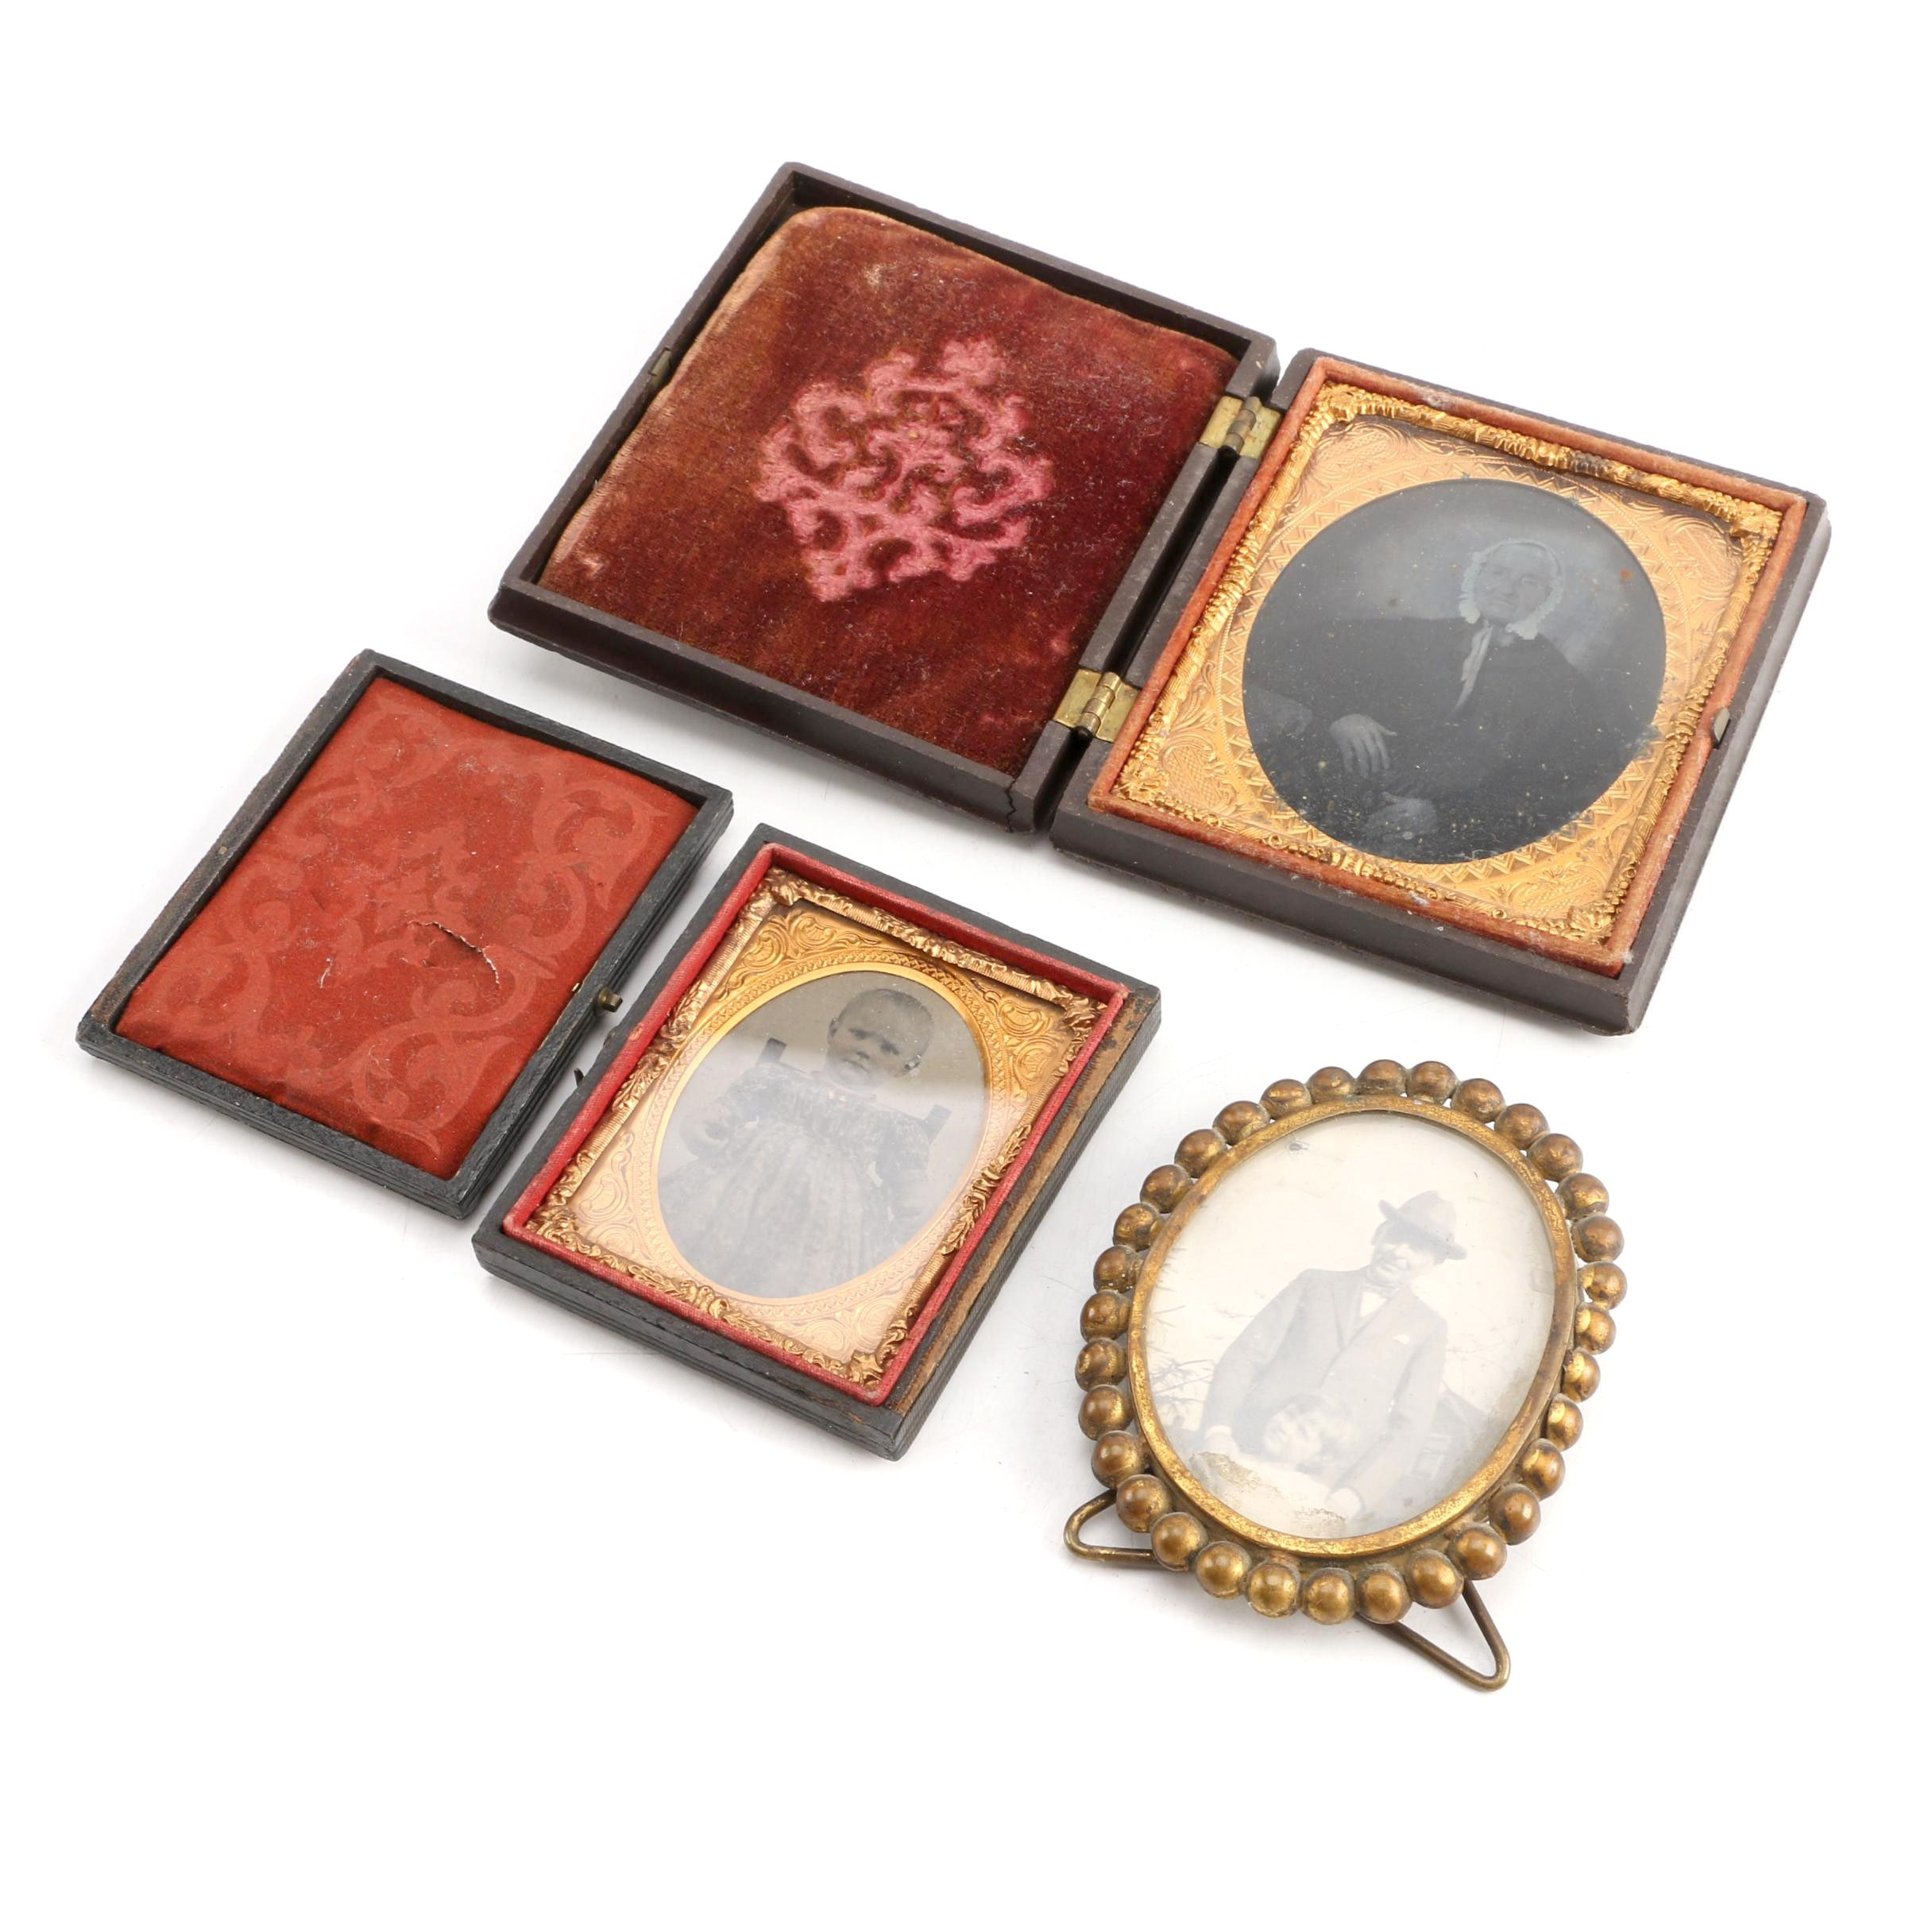 Antique Photographs with Cases